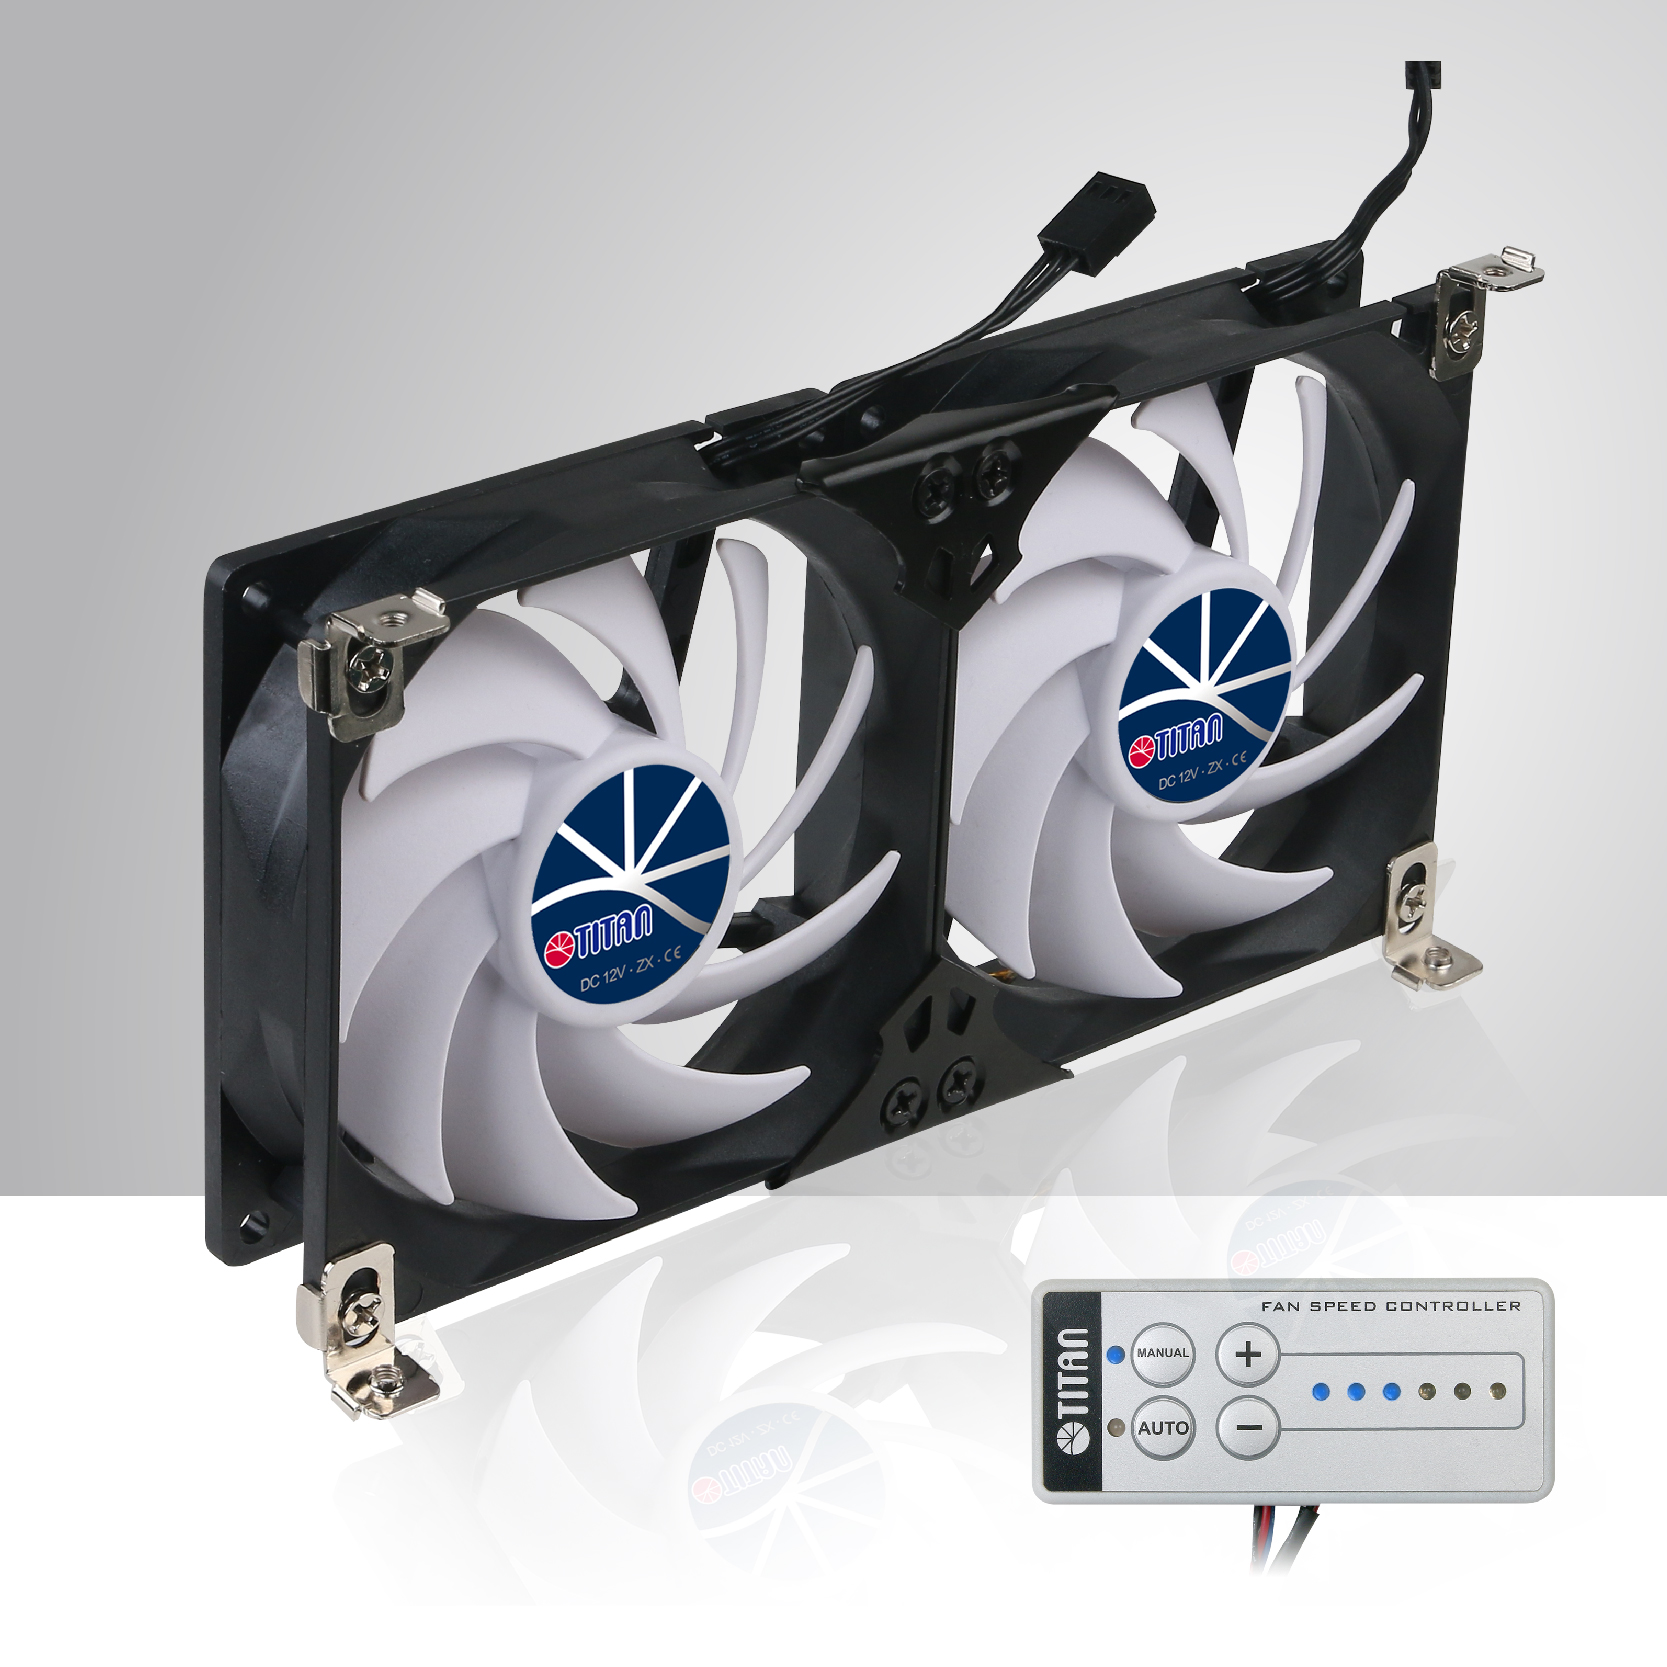 Rack Mount Cooling Fan Can Be Applied To Refrigerator Vent Fan In  Motorhome, Camper Van, Caravan, Travel Trailer, Or Be Audio/Vedio Cabinet  Fan, ...